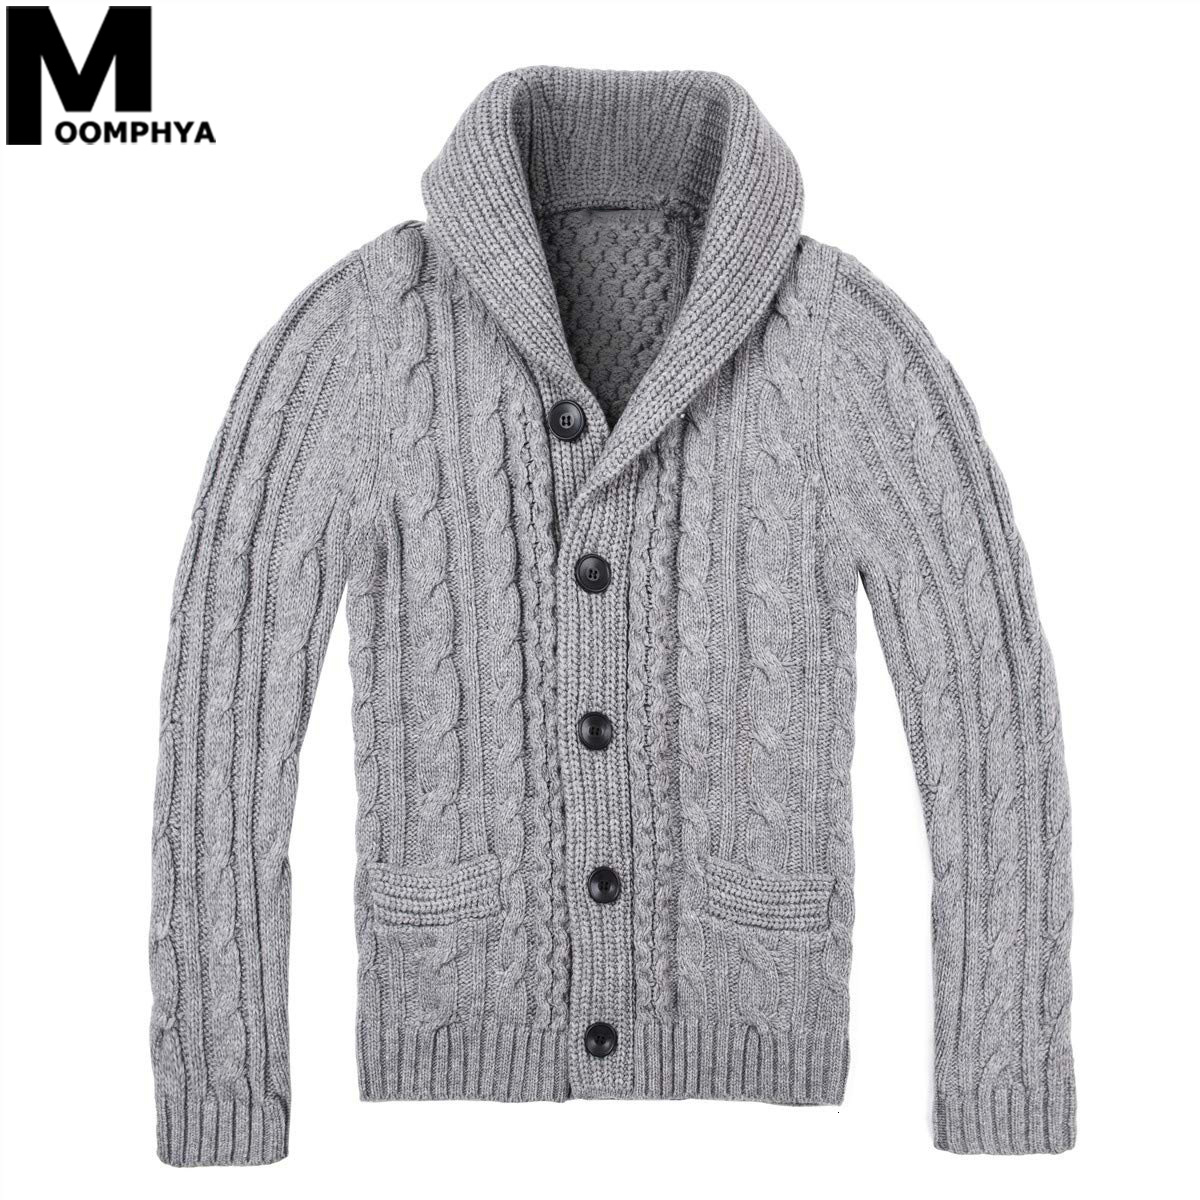 2020 Knitted Long Sleeve Cardigan Men Sweater Streetwear Jacquard Sweater Coat Men Turtleneck Sweater Jacket Winter Sweater Men